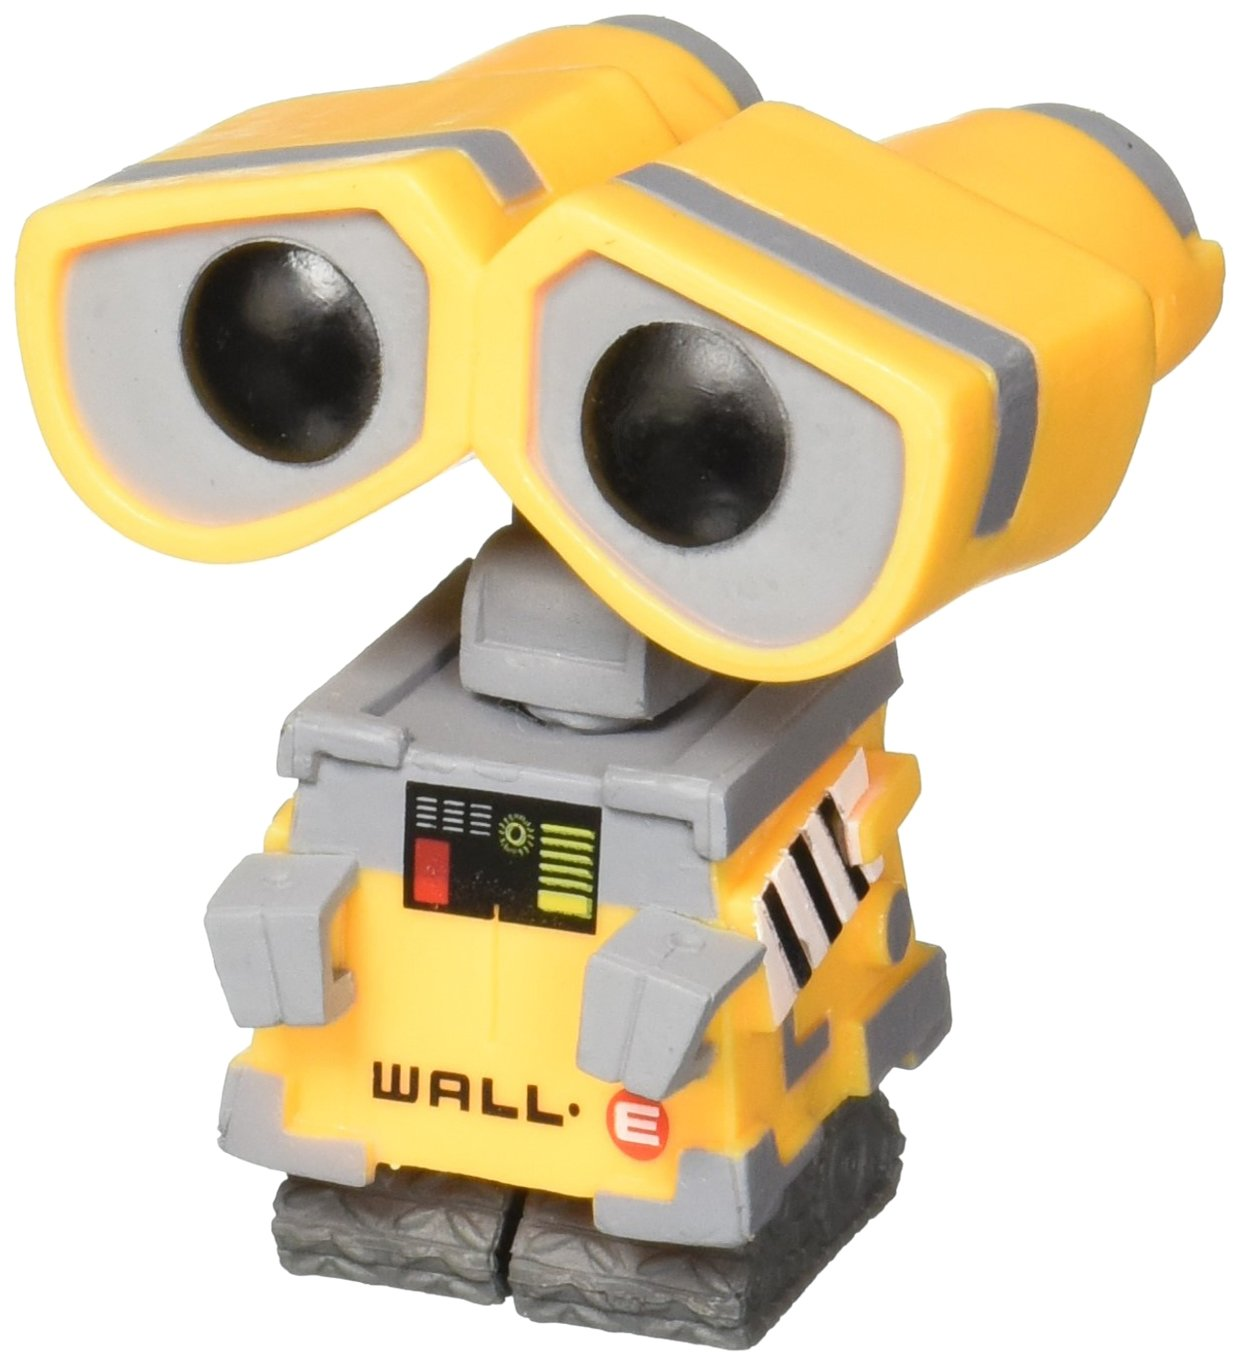 Buy Wall E Now!